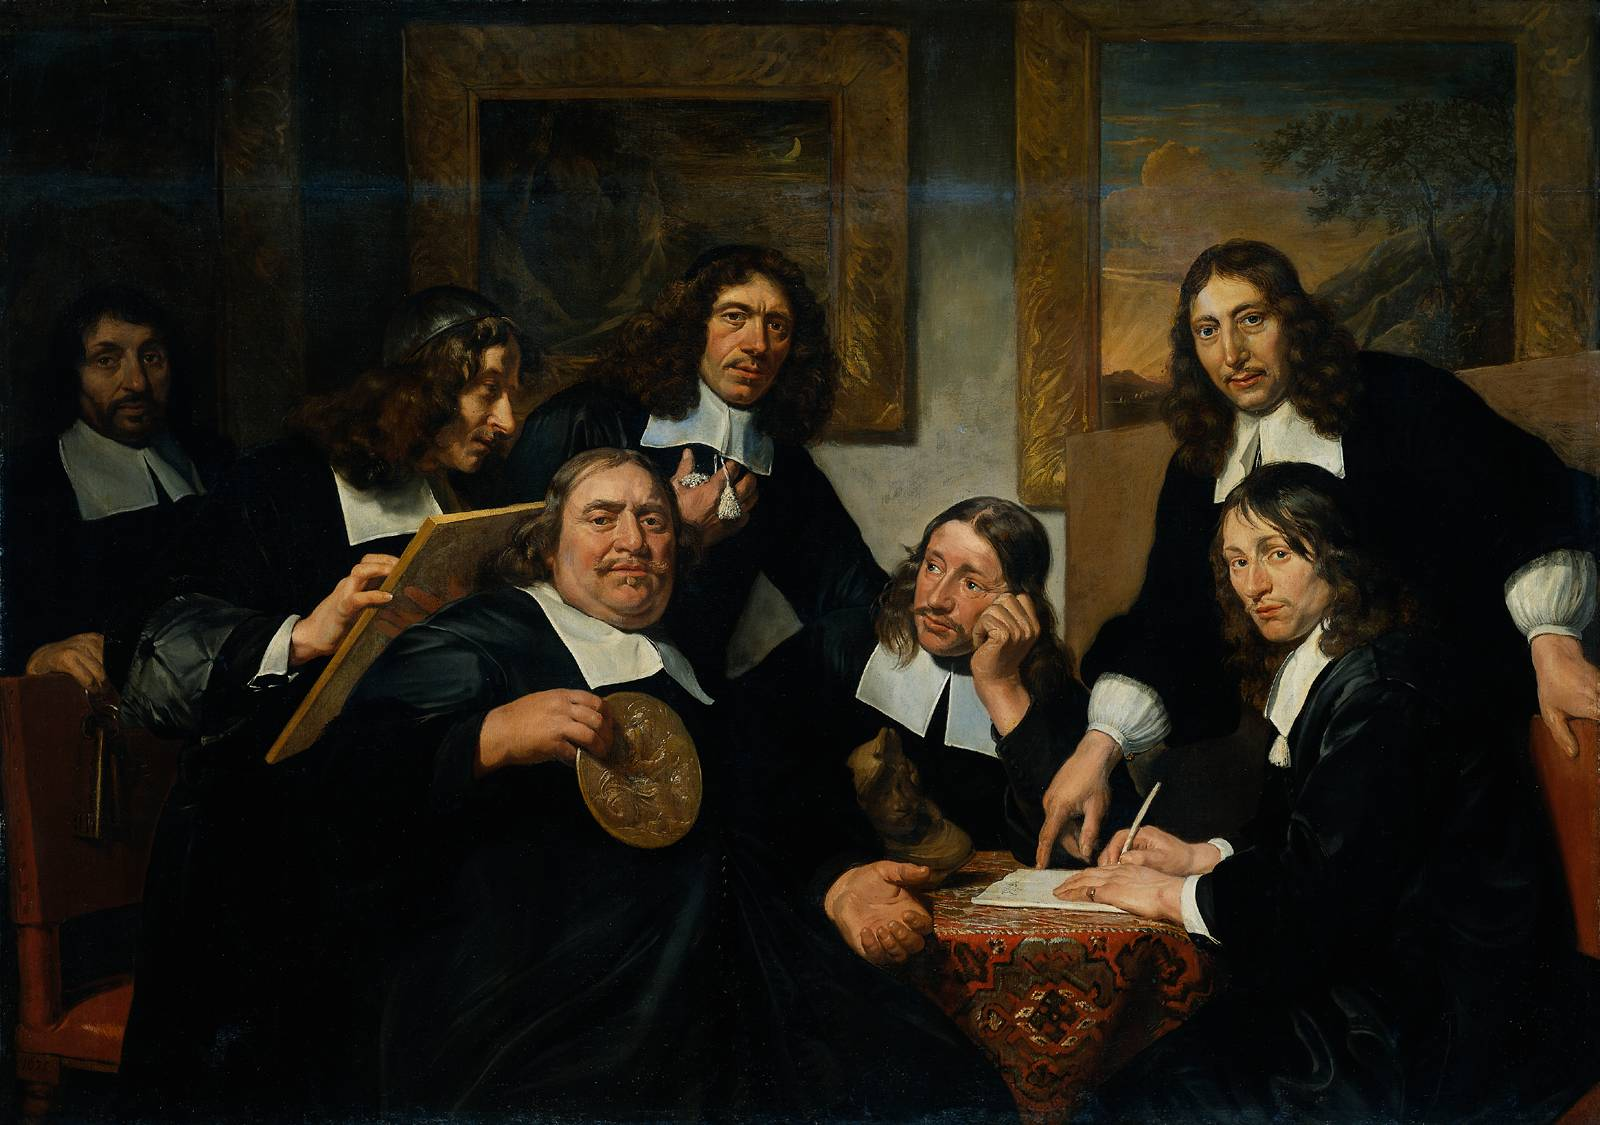 The governors of the guild of St. Luke, Jan de Bray